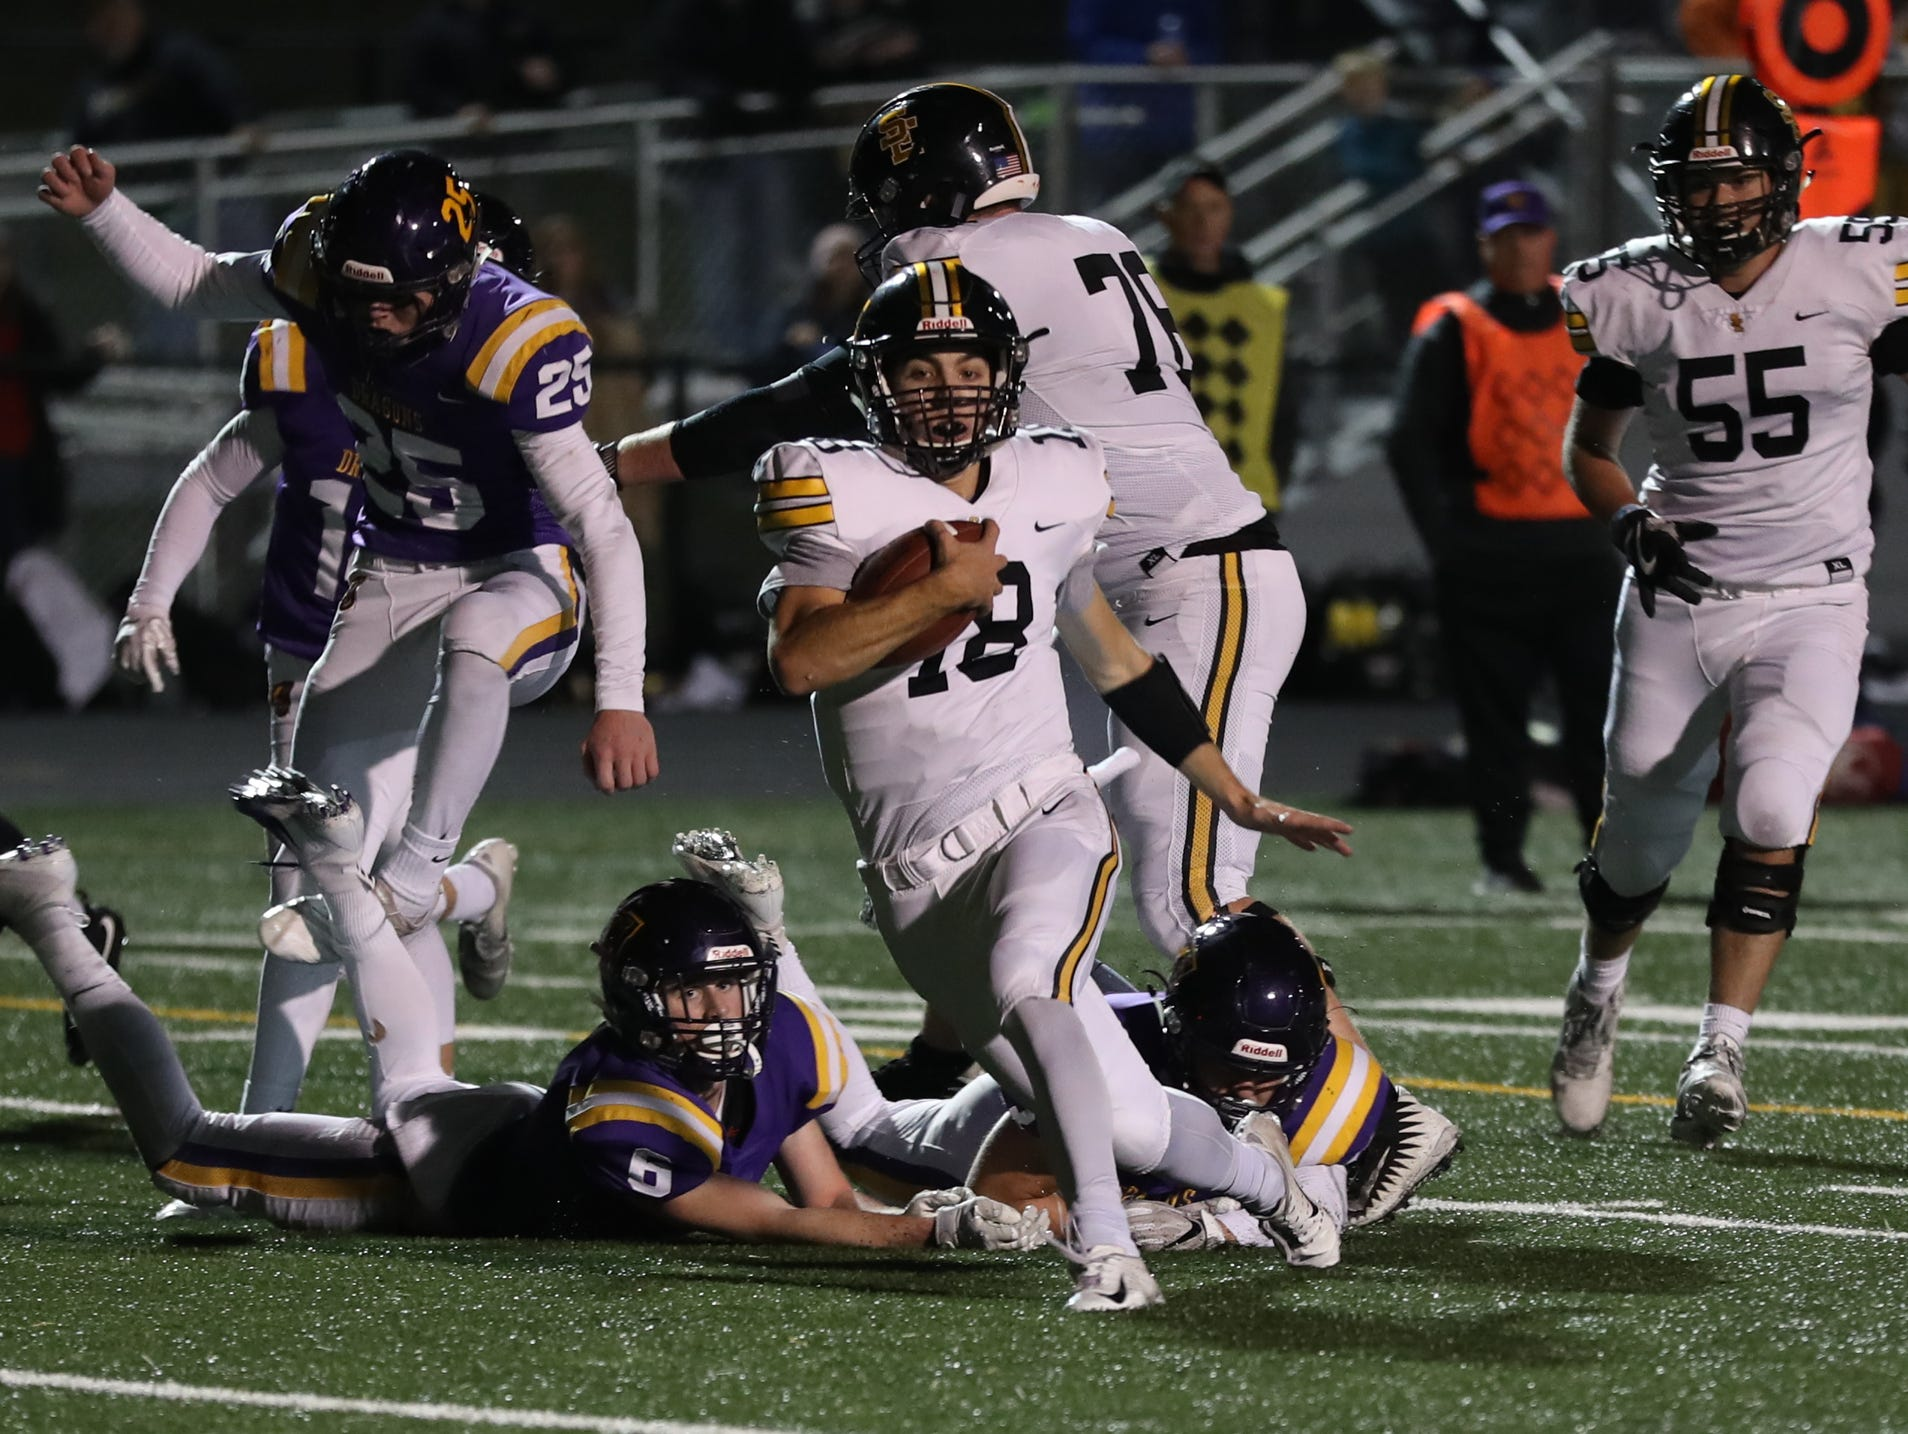 Nov 2, 2018; Johnston, IA, USA; Johnston Dragons Quincy Hale (18) scores a TD against the Southeast Polk Rams at Johnston Stadium. The Rams beat the Dragons 21-7.